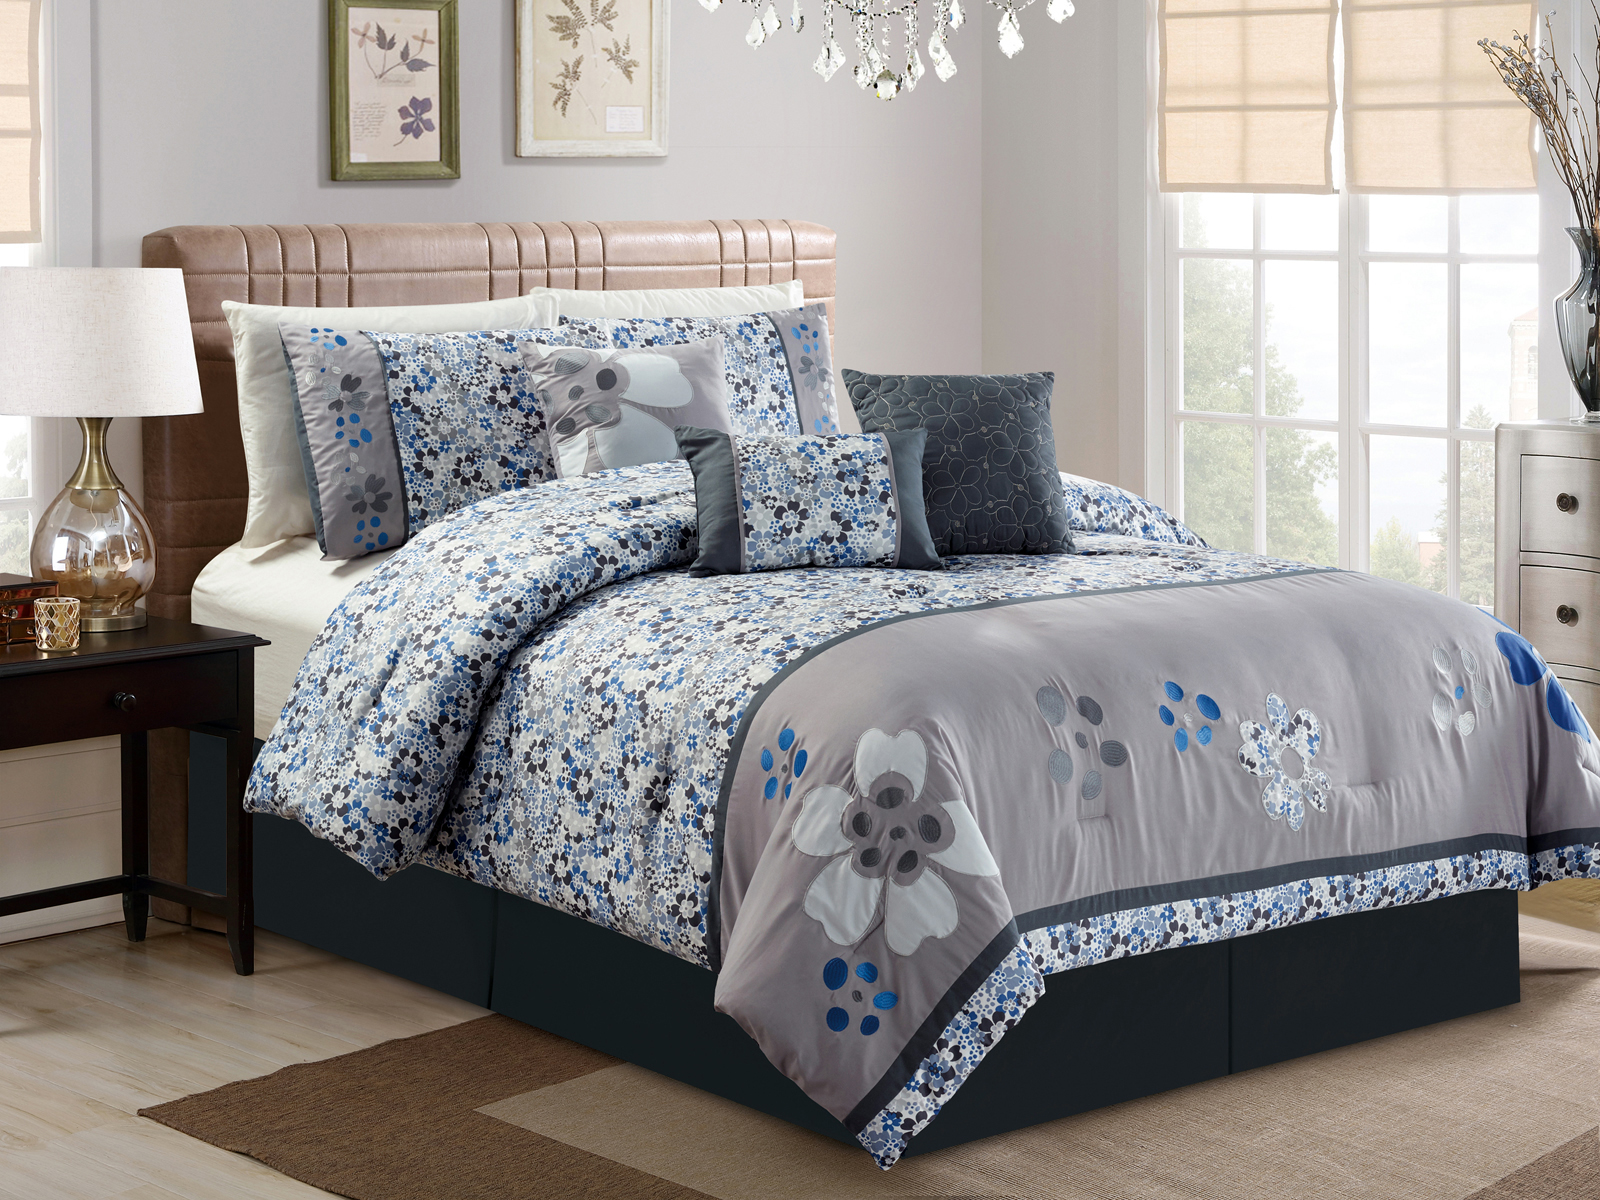 7-Pc Francis Applique Floral Embroidery Flocking Comforter